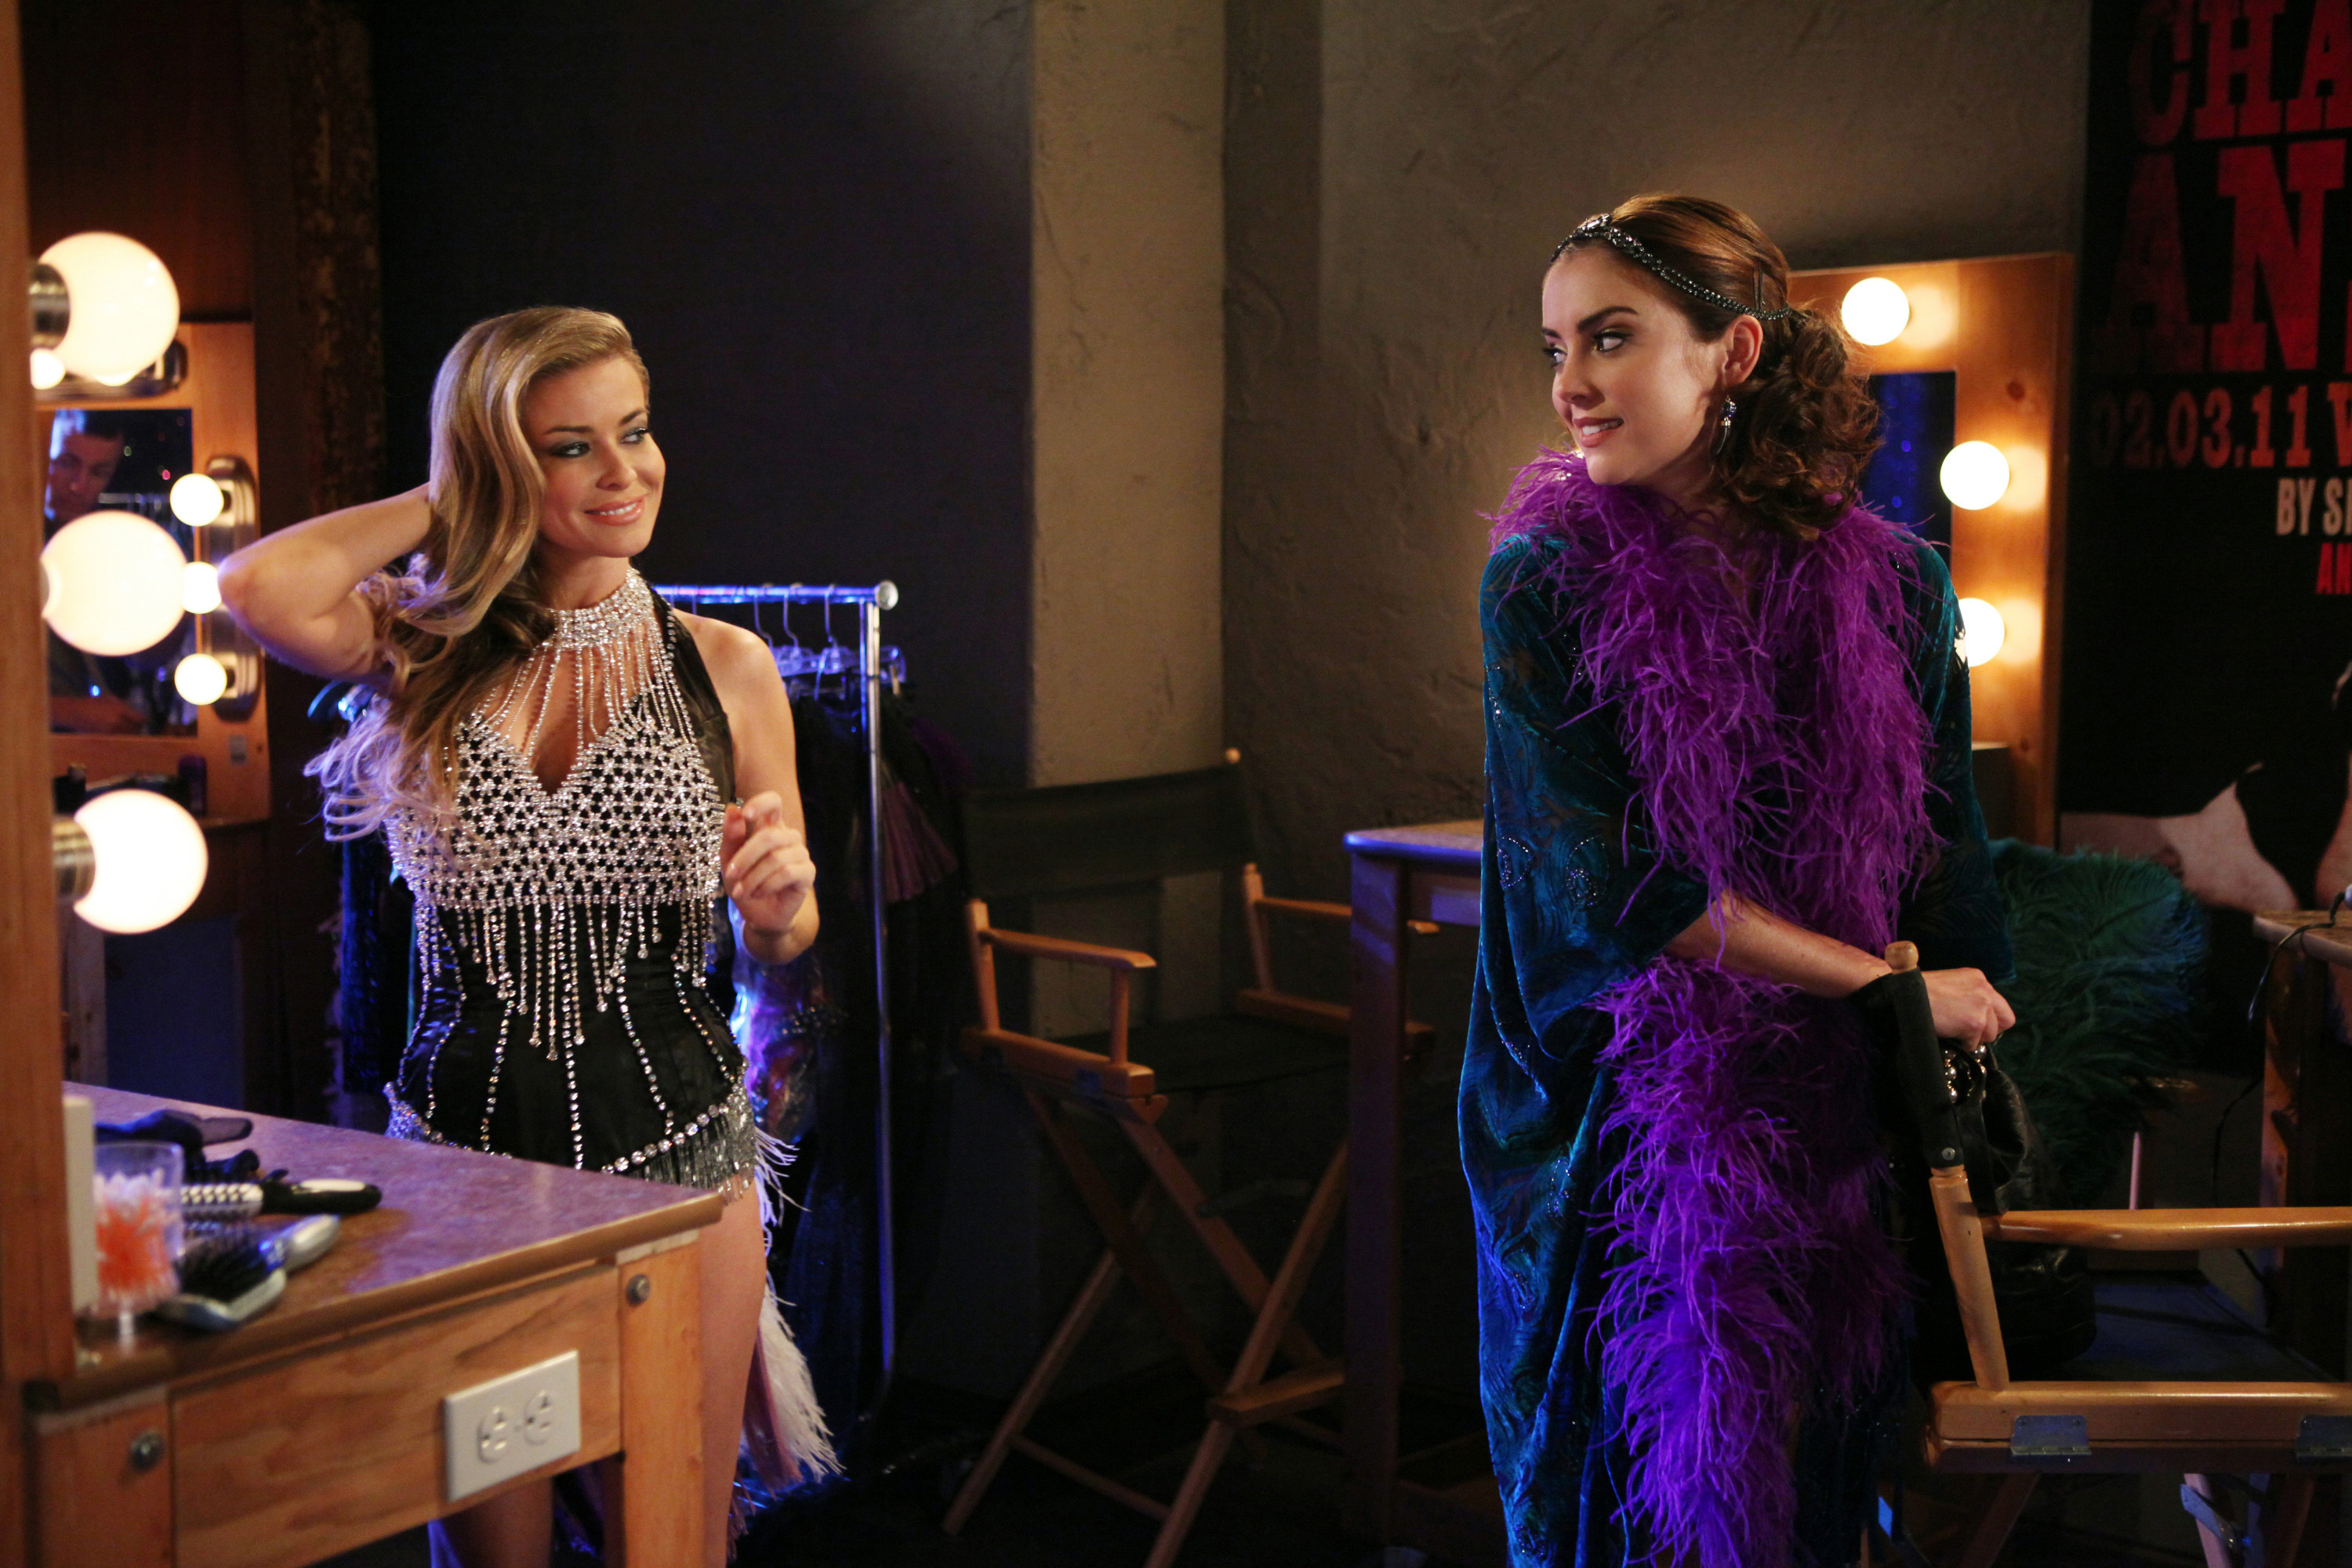 Carmen and Electra talking backstage